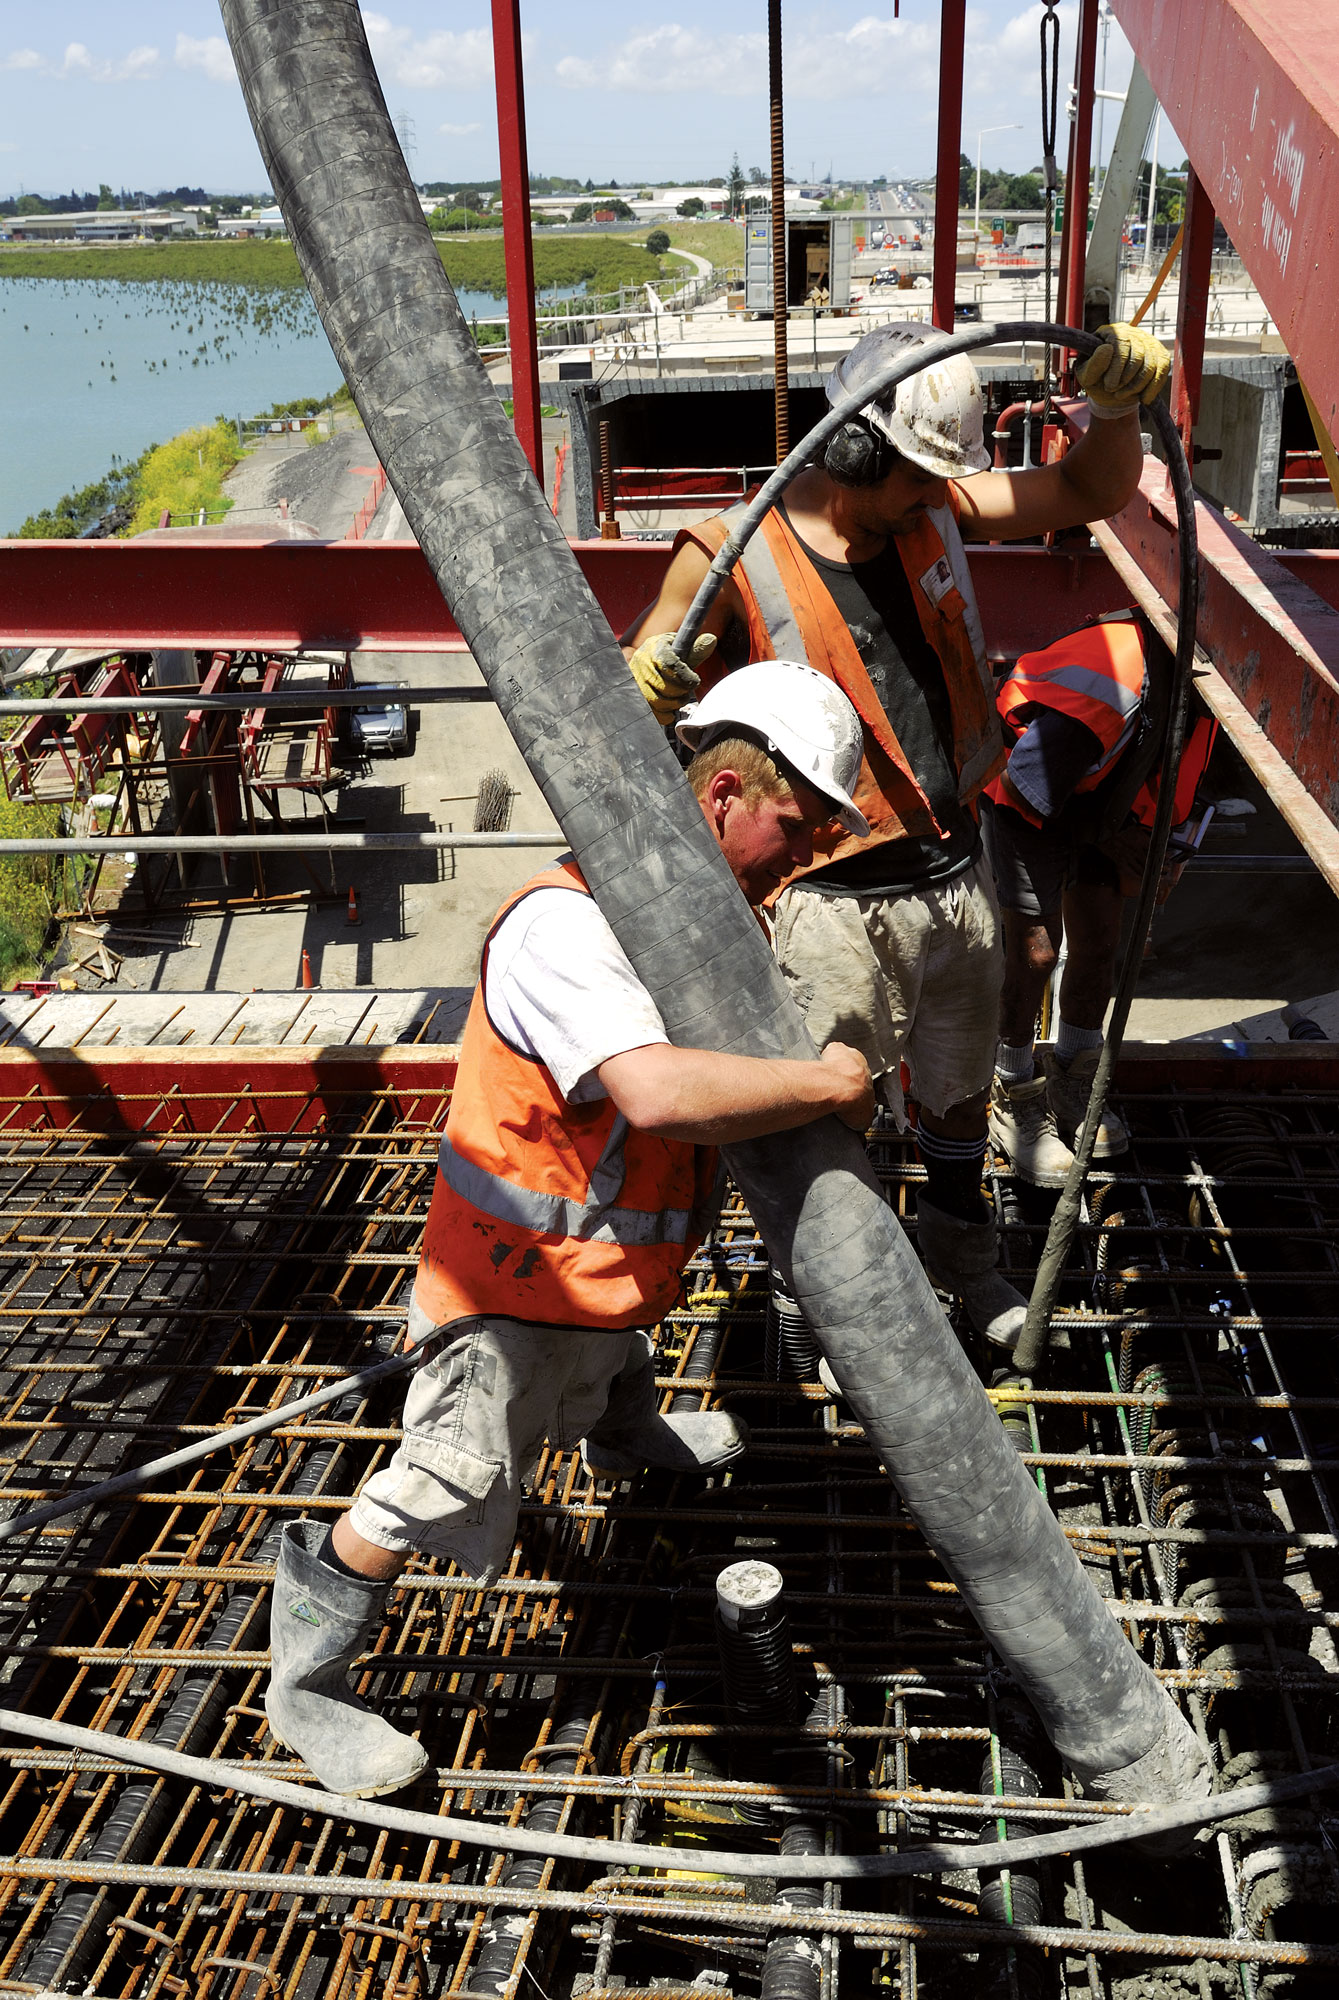 Dan Noble and Johny Hope pour concrete on Pier 2 of the Manukau Harbour Crossing. When completed, the bridge will contain around 26,000 tonnes of concrete and 1000 tonnes of steel on foundations that have been engineered to carry up to 500 vehicles at any one time—as well as the possibility of a future low-level rail.